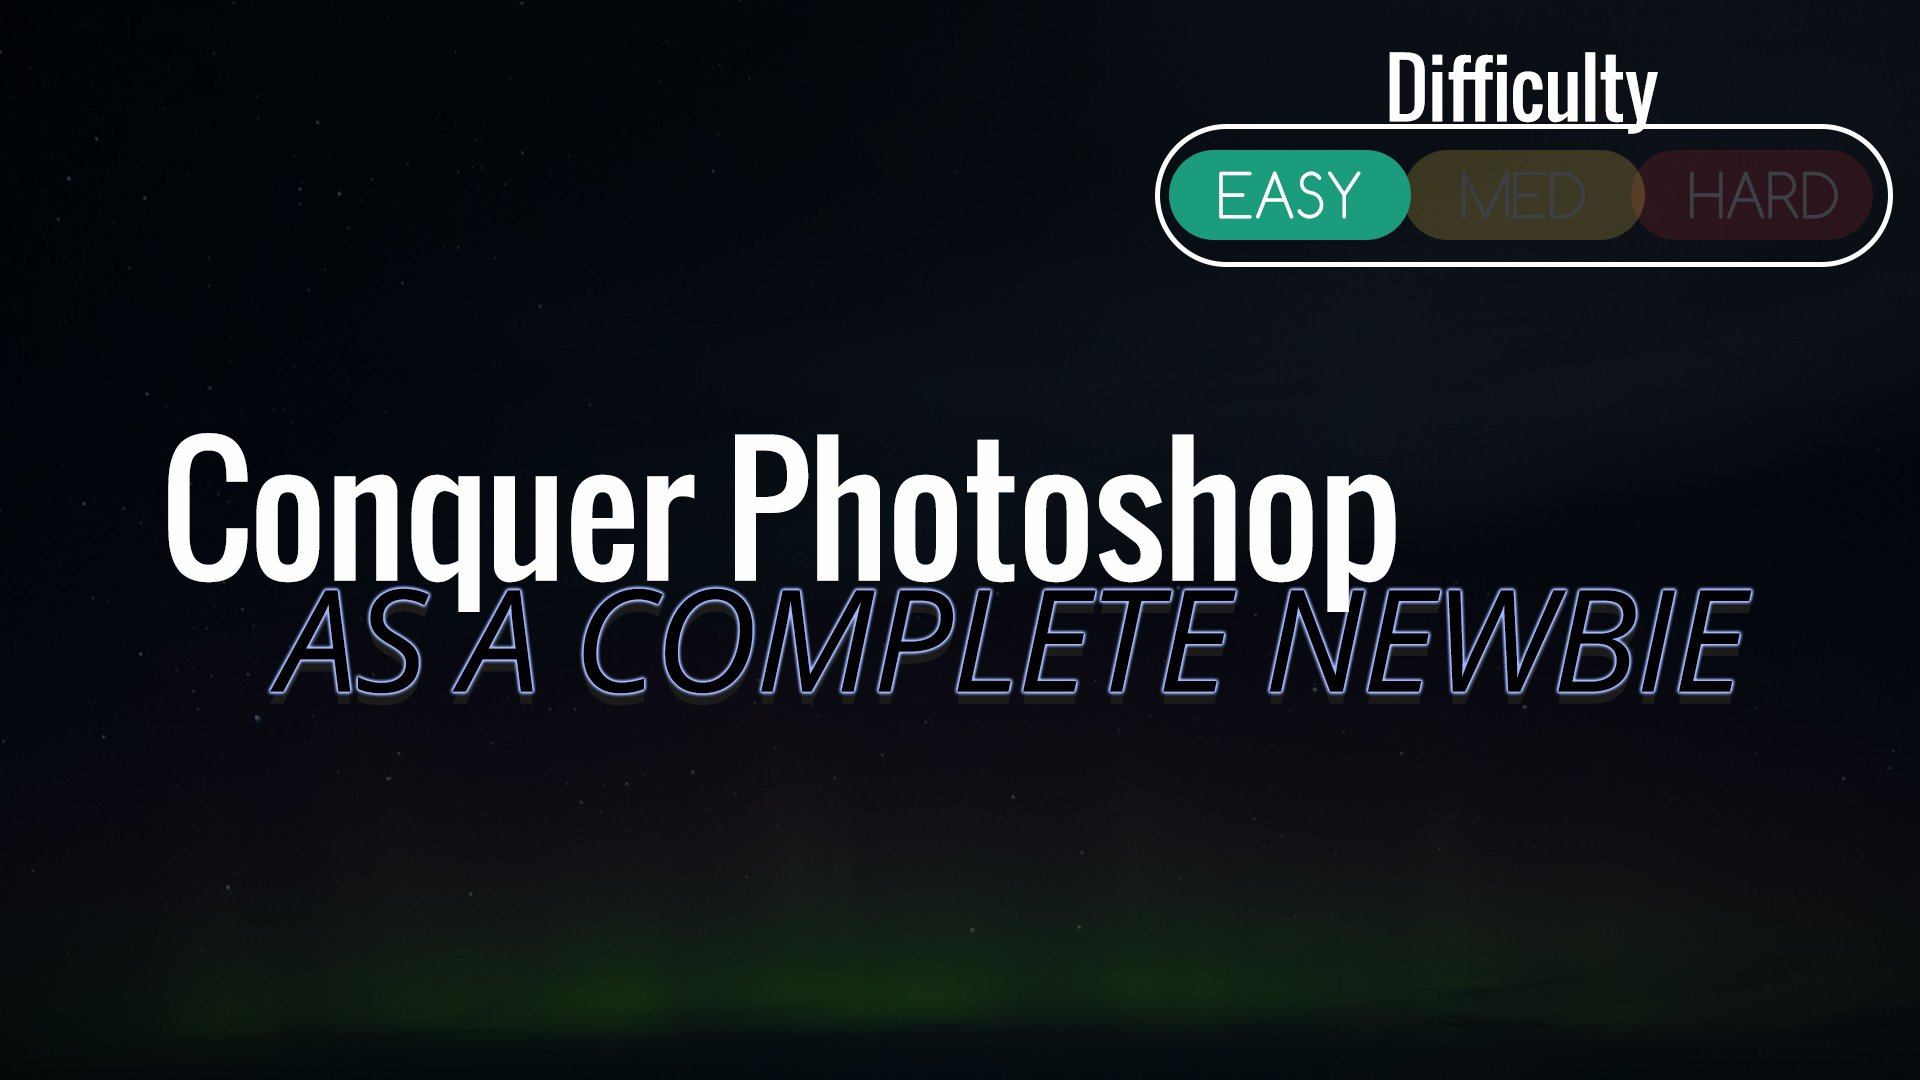 Conquer Photoshop as a Complete Newbie: Learn Photoshop Today